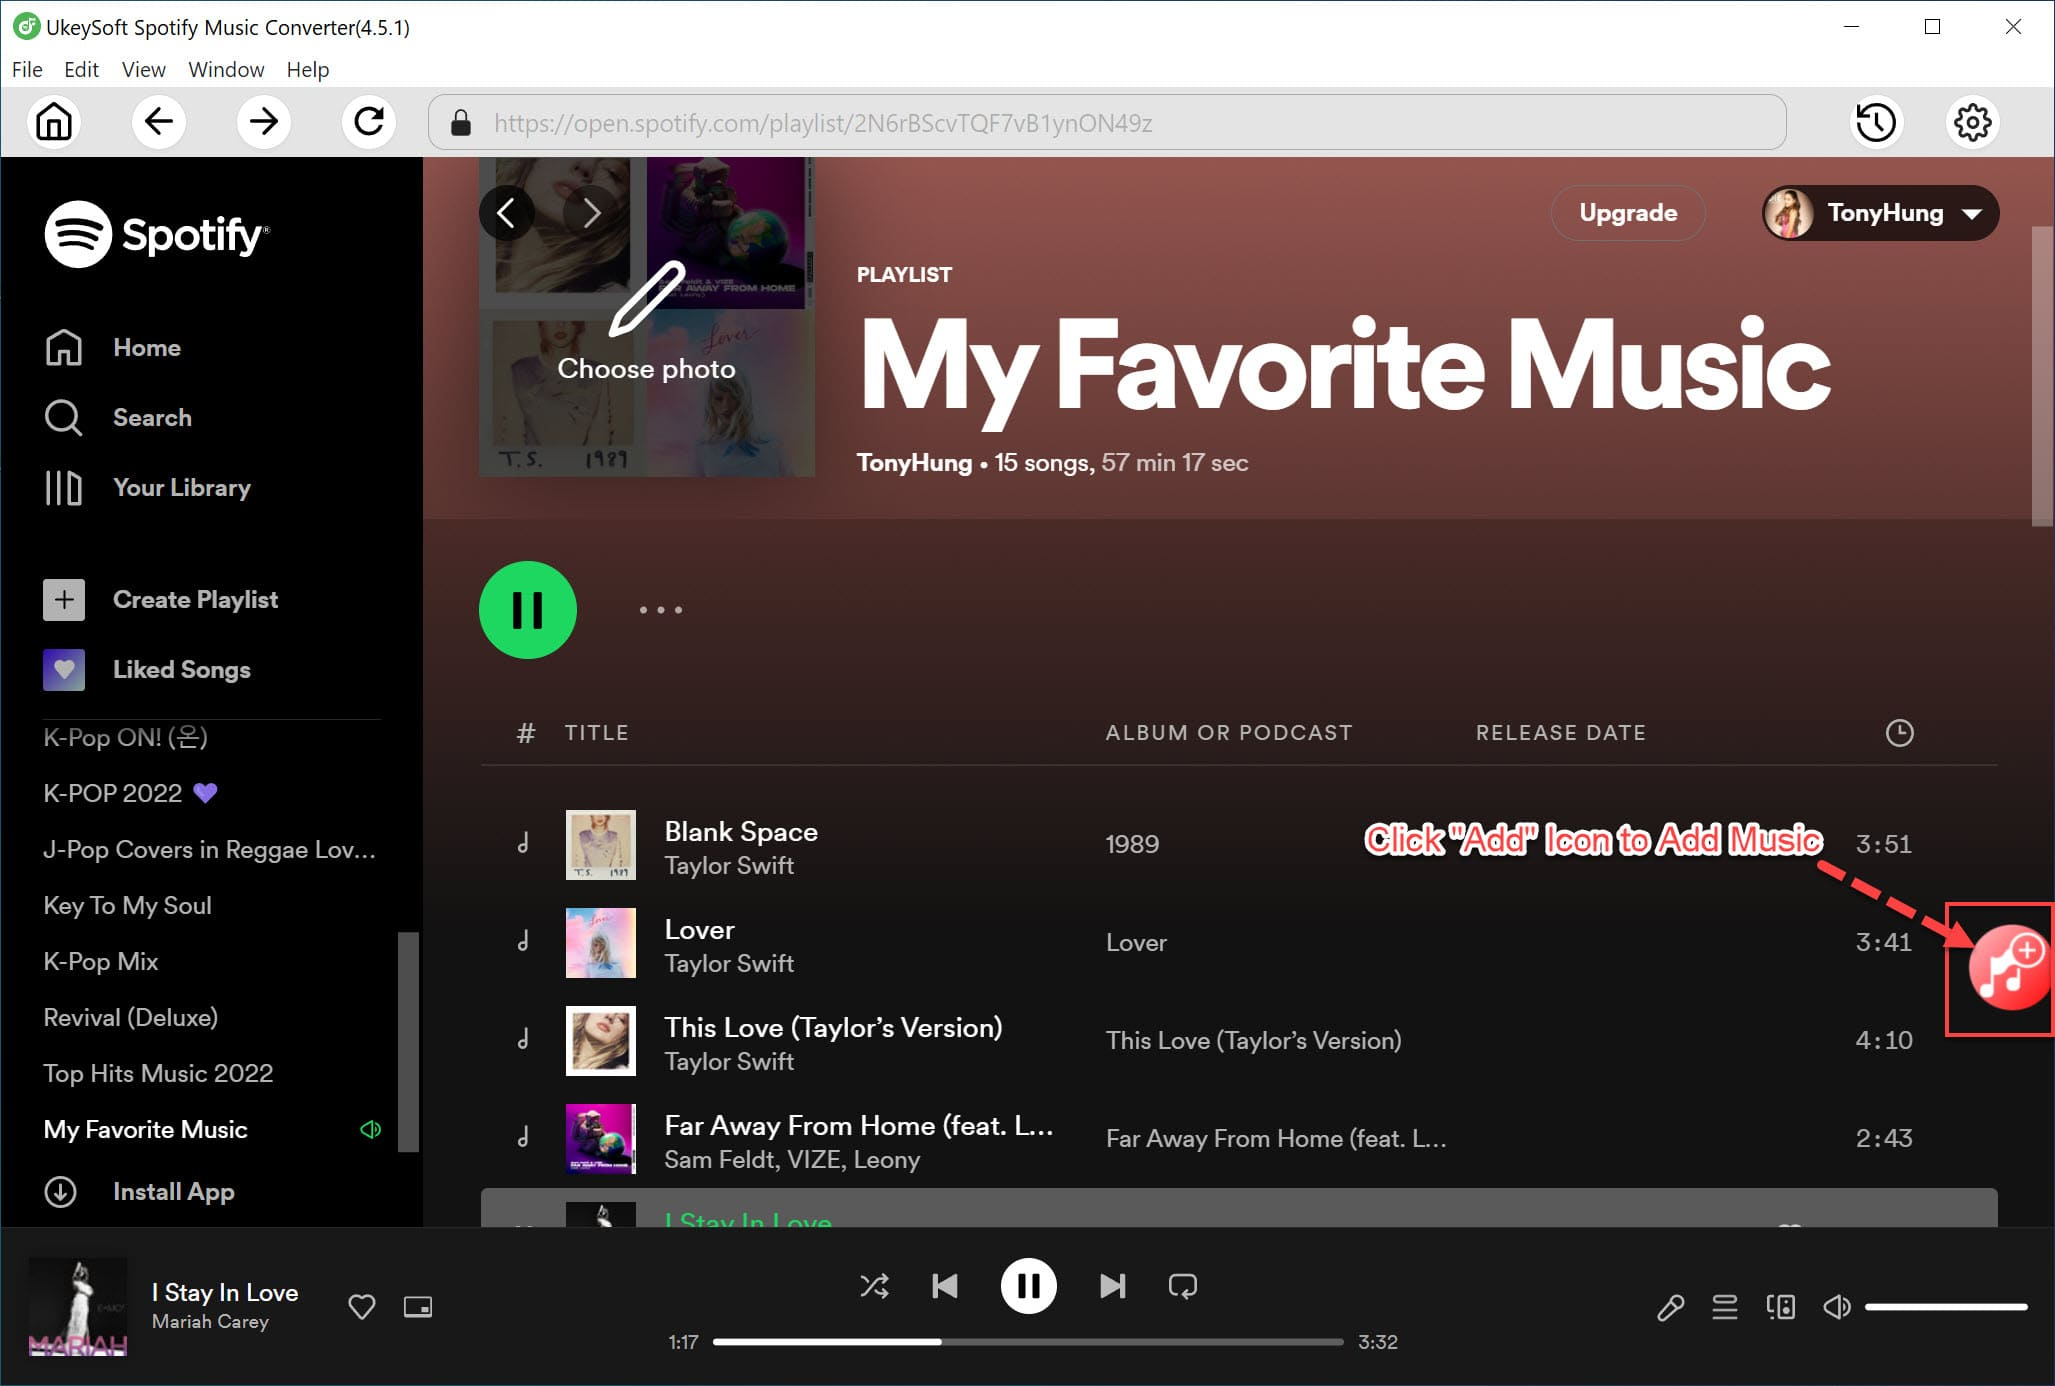 How to Download (MP3) Music from Spotify on Mac | UkeySoft